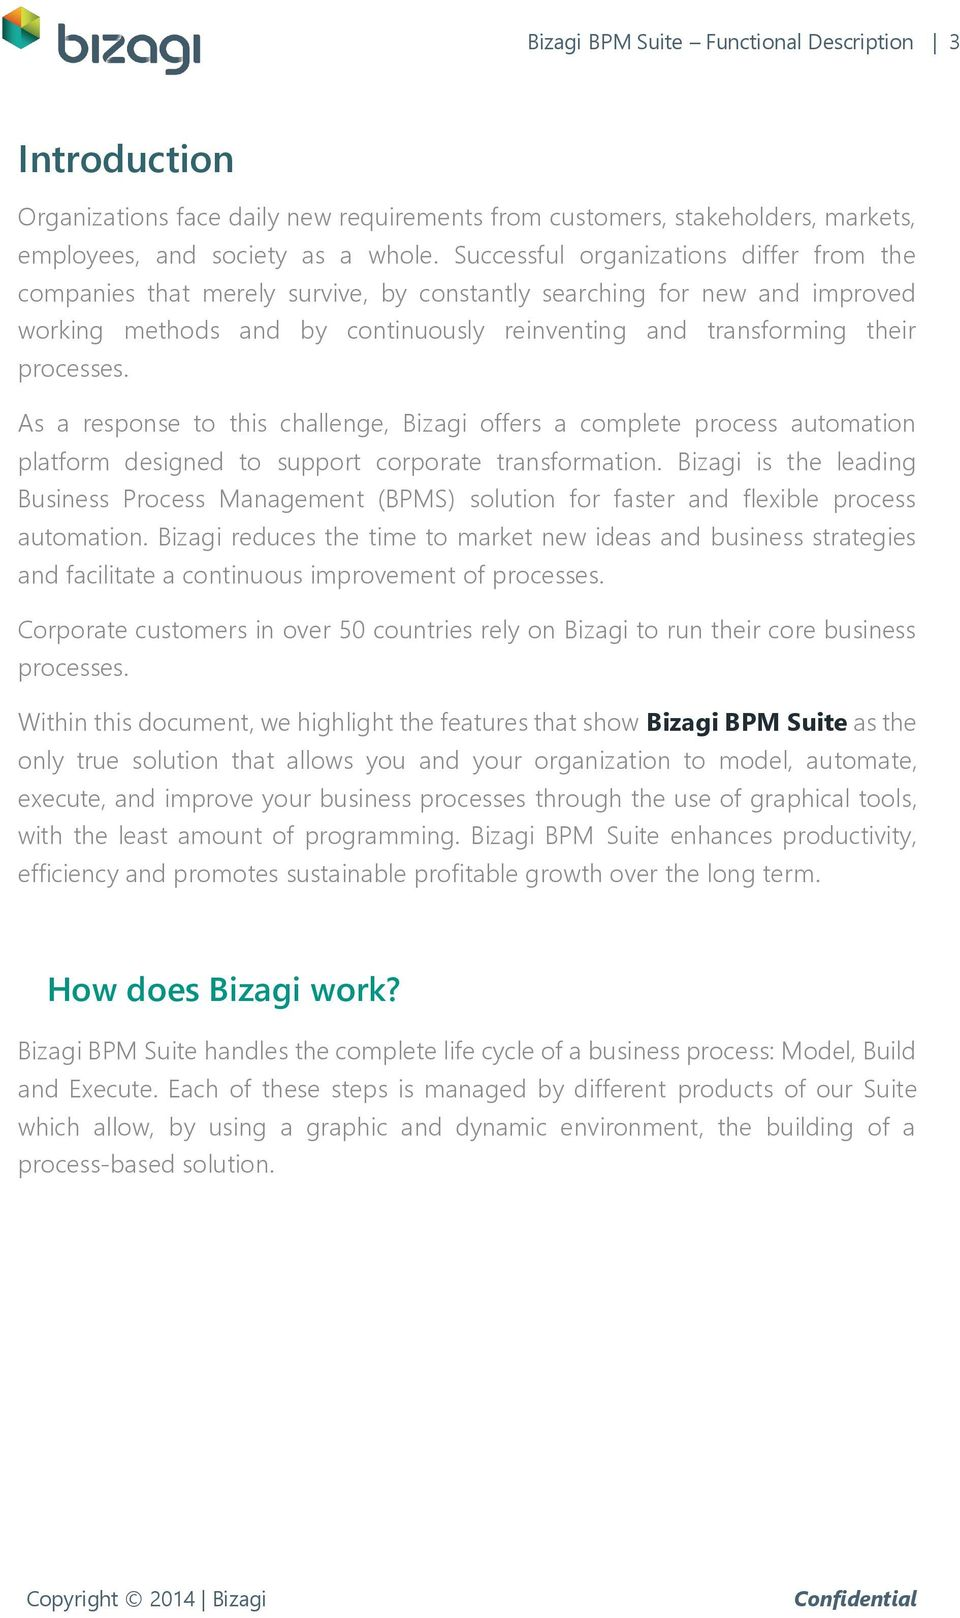 As a response to this challenge, Bizagi offers a complete process automation platform designed to support corporate transformation.